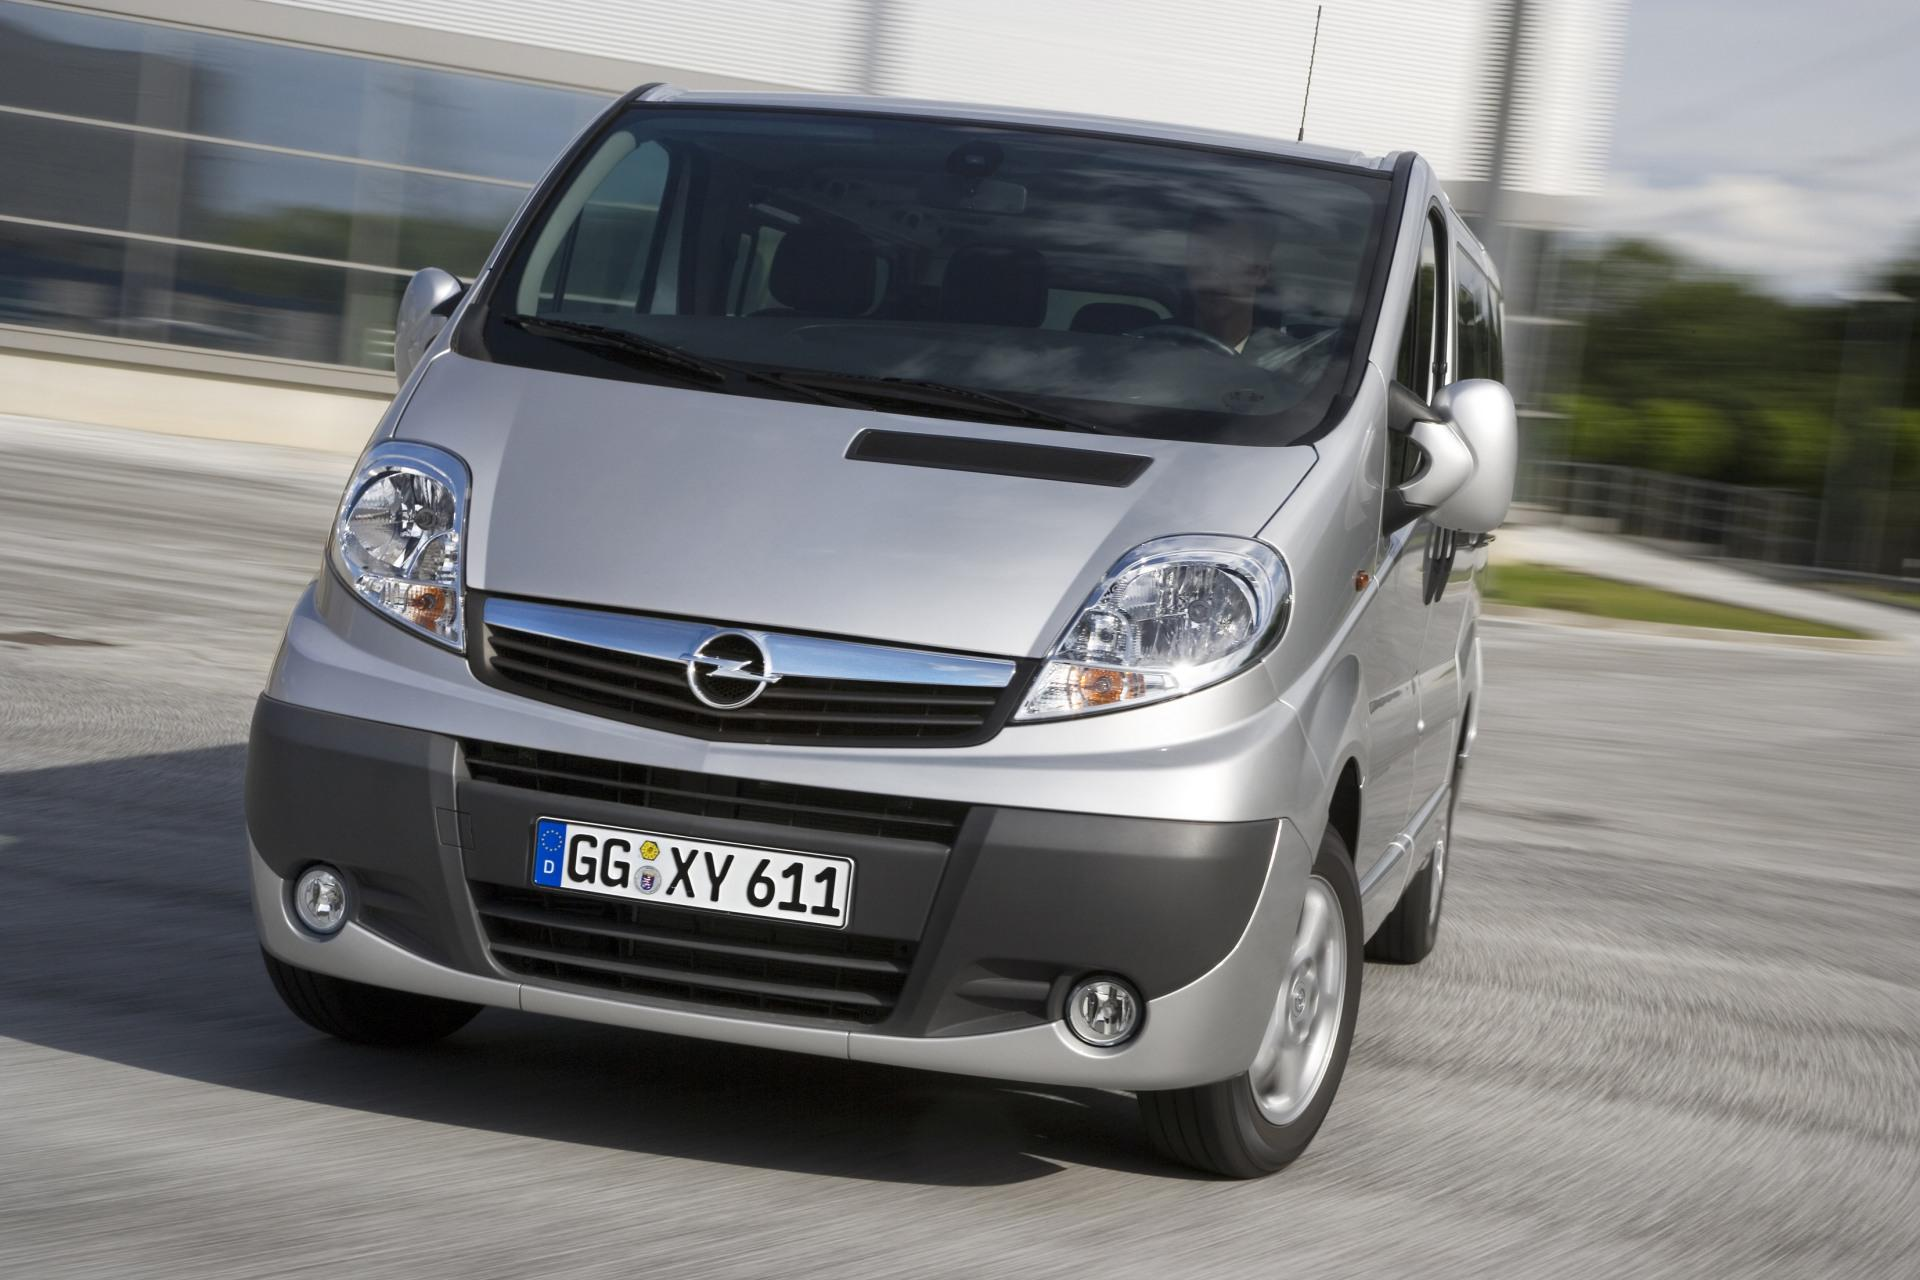 2009 Opel Vivaro News and Information | conceptcarz.com